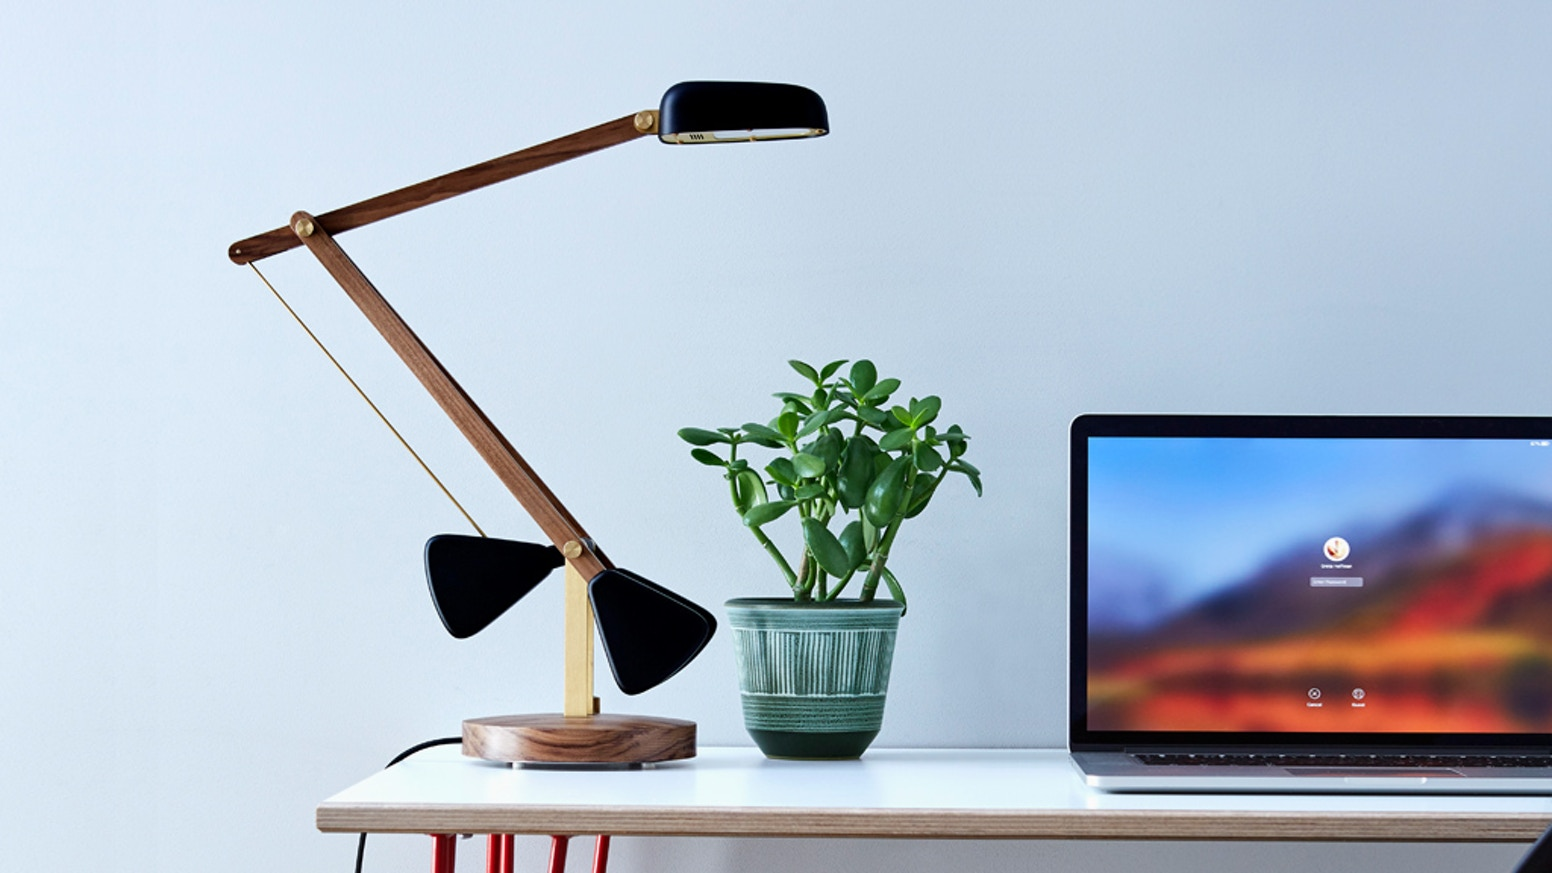 The easy-to-adjust, high performance light with sleek lines and no unsightly cords. Perfect for the home or office.